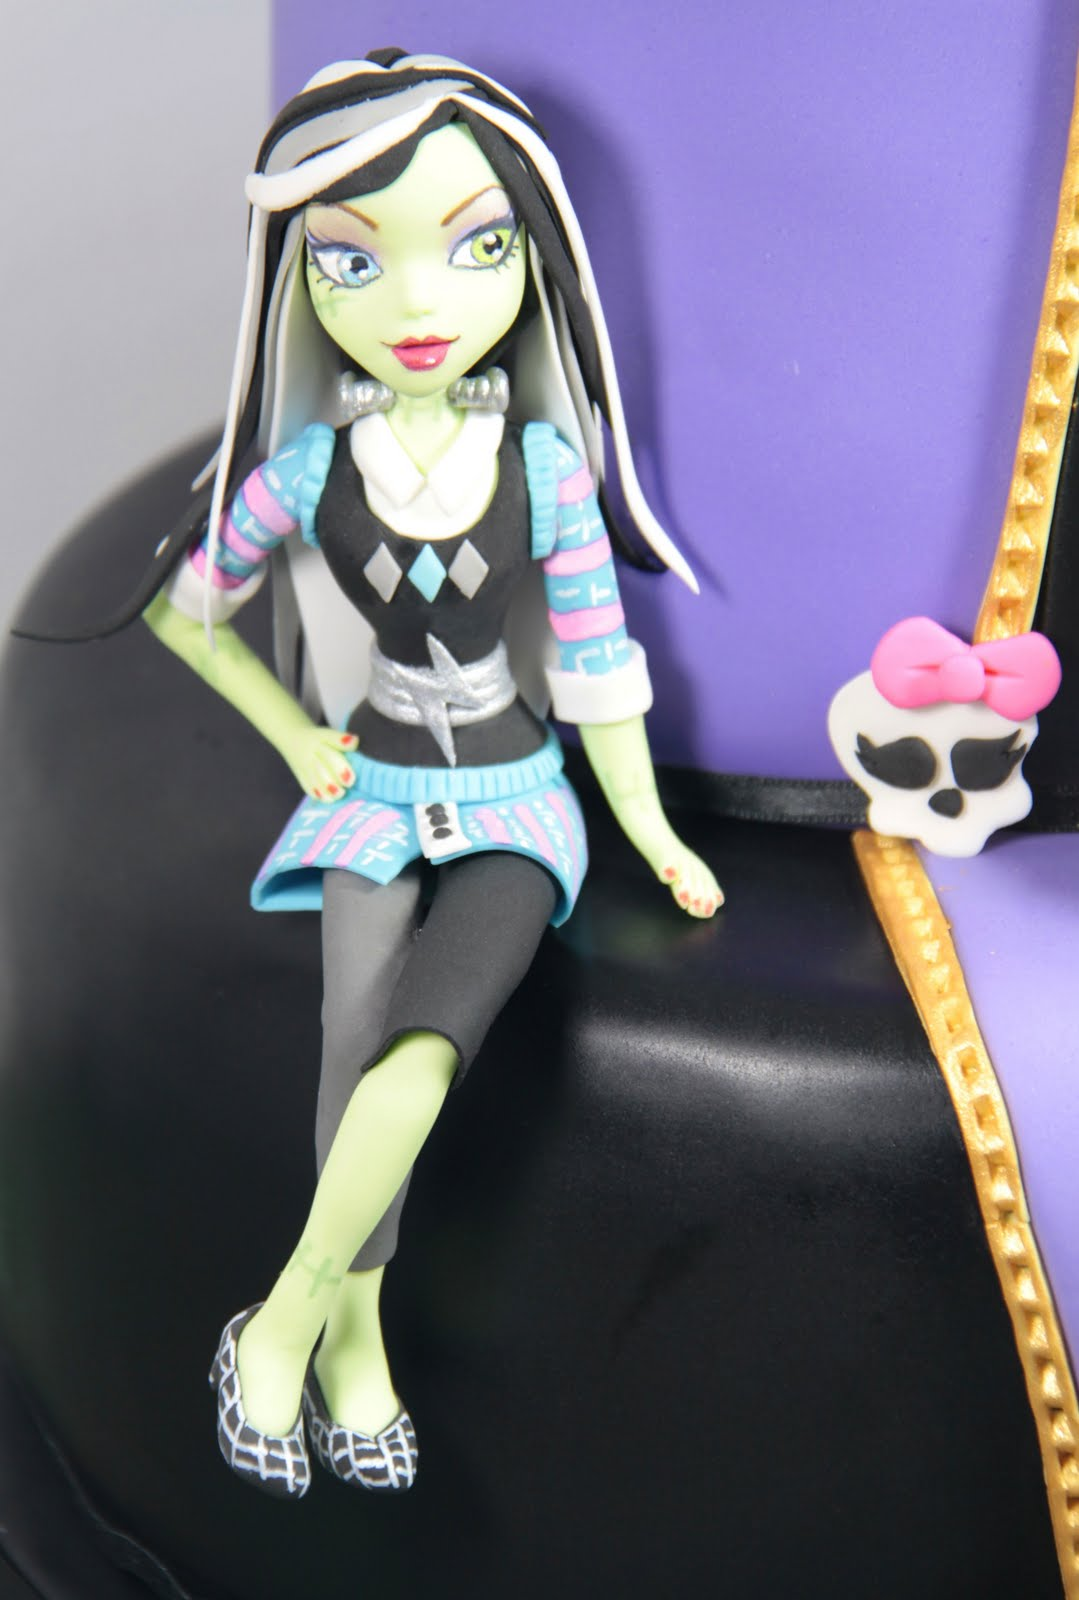 Modelos De Tortas De Monster High Wallpapers | Real Madrid Wallpapers